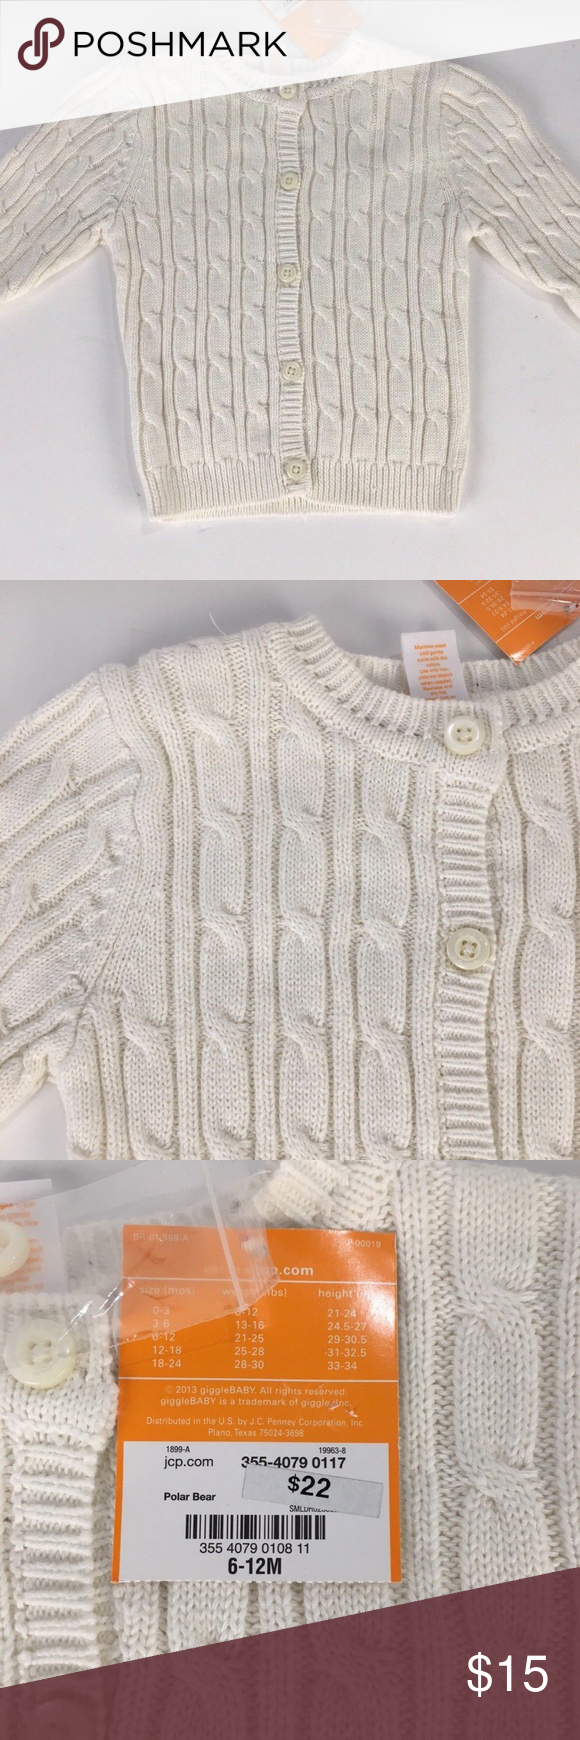 05f476fabbe2 Giggle Baby Off White Cable Knit Cardigan 6-12 mo NWT